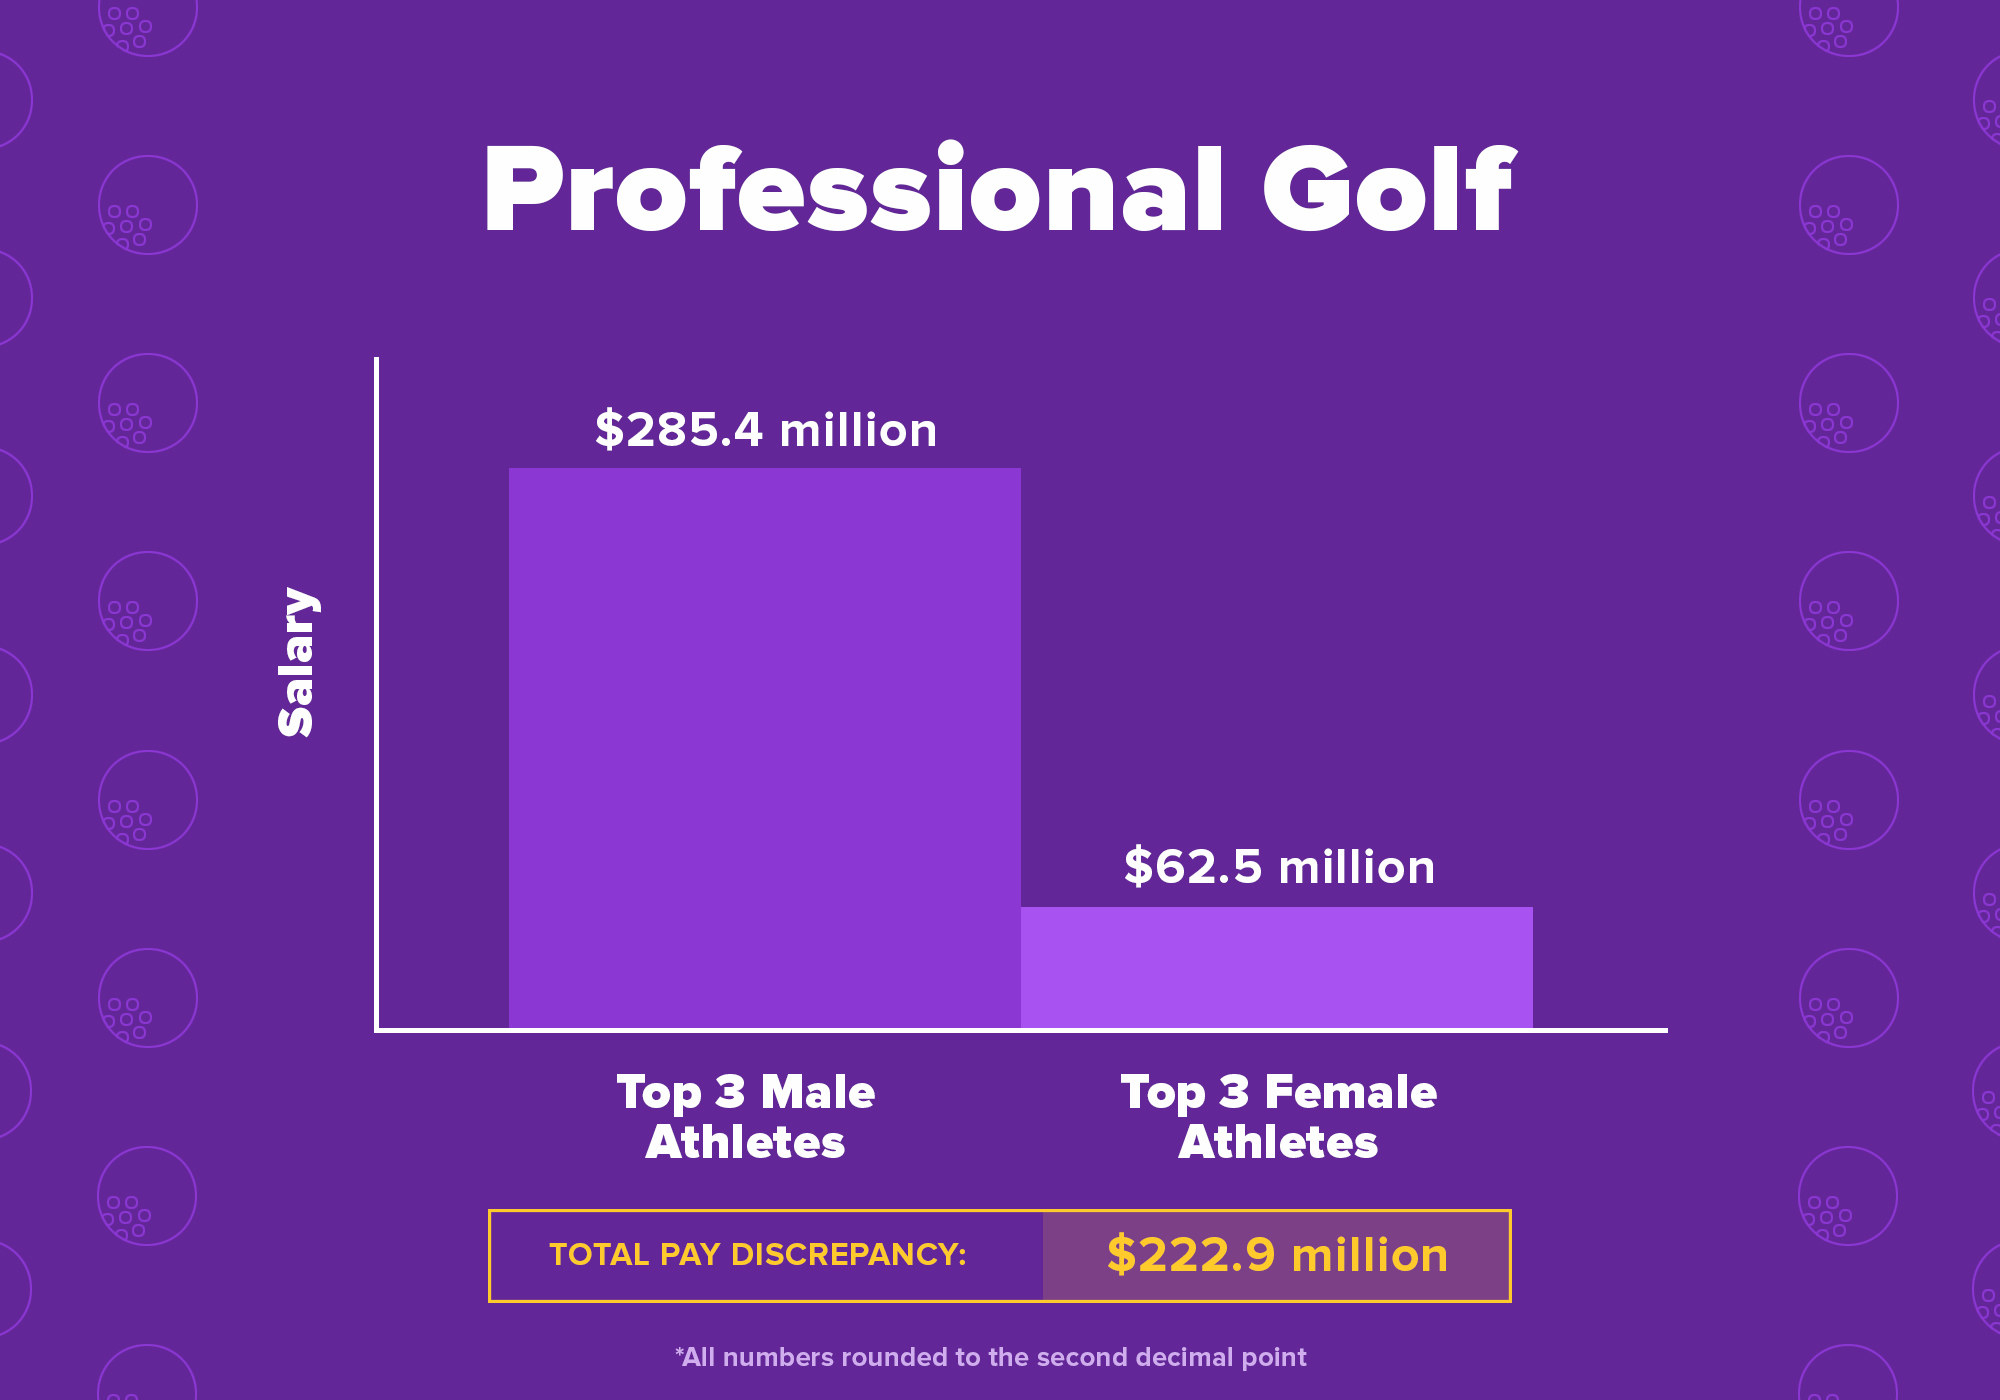 Chart showing the total pay discrepancy between these 6 golf athletes is $222.9 million